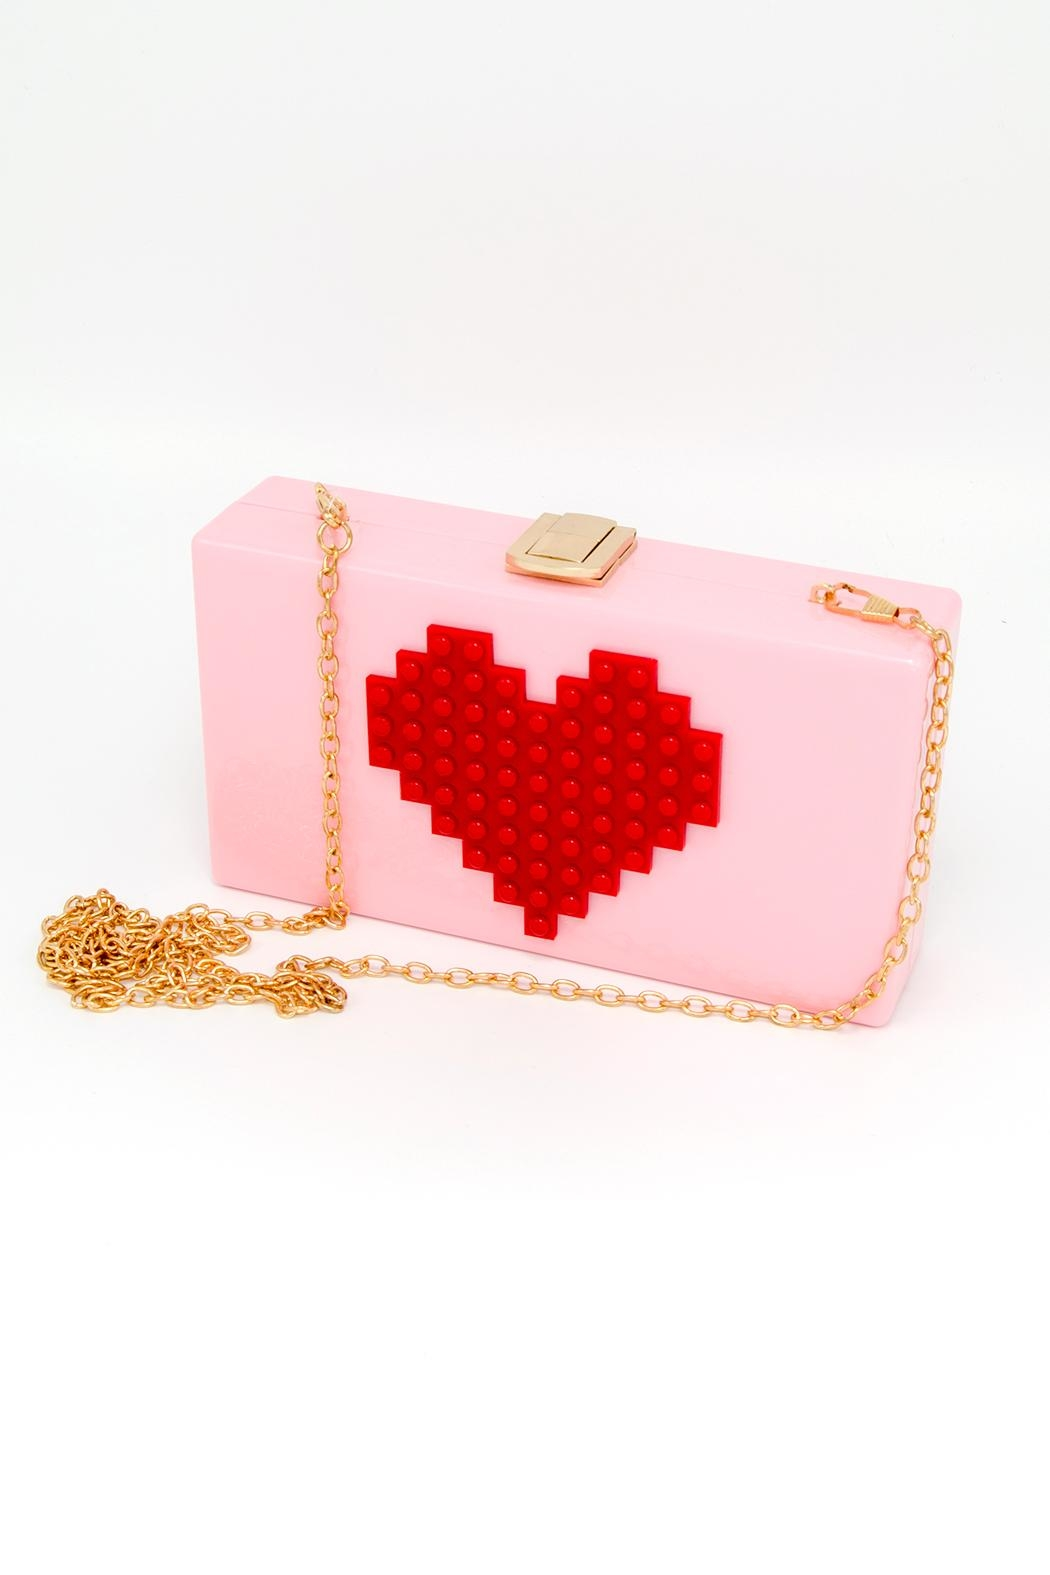 CHLOE K. NEW YORK Heart Clutch Bag - Main Image